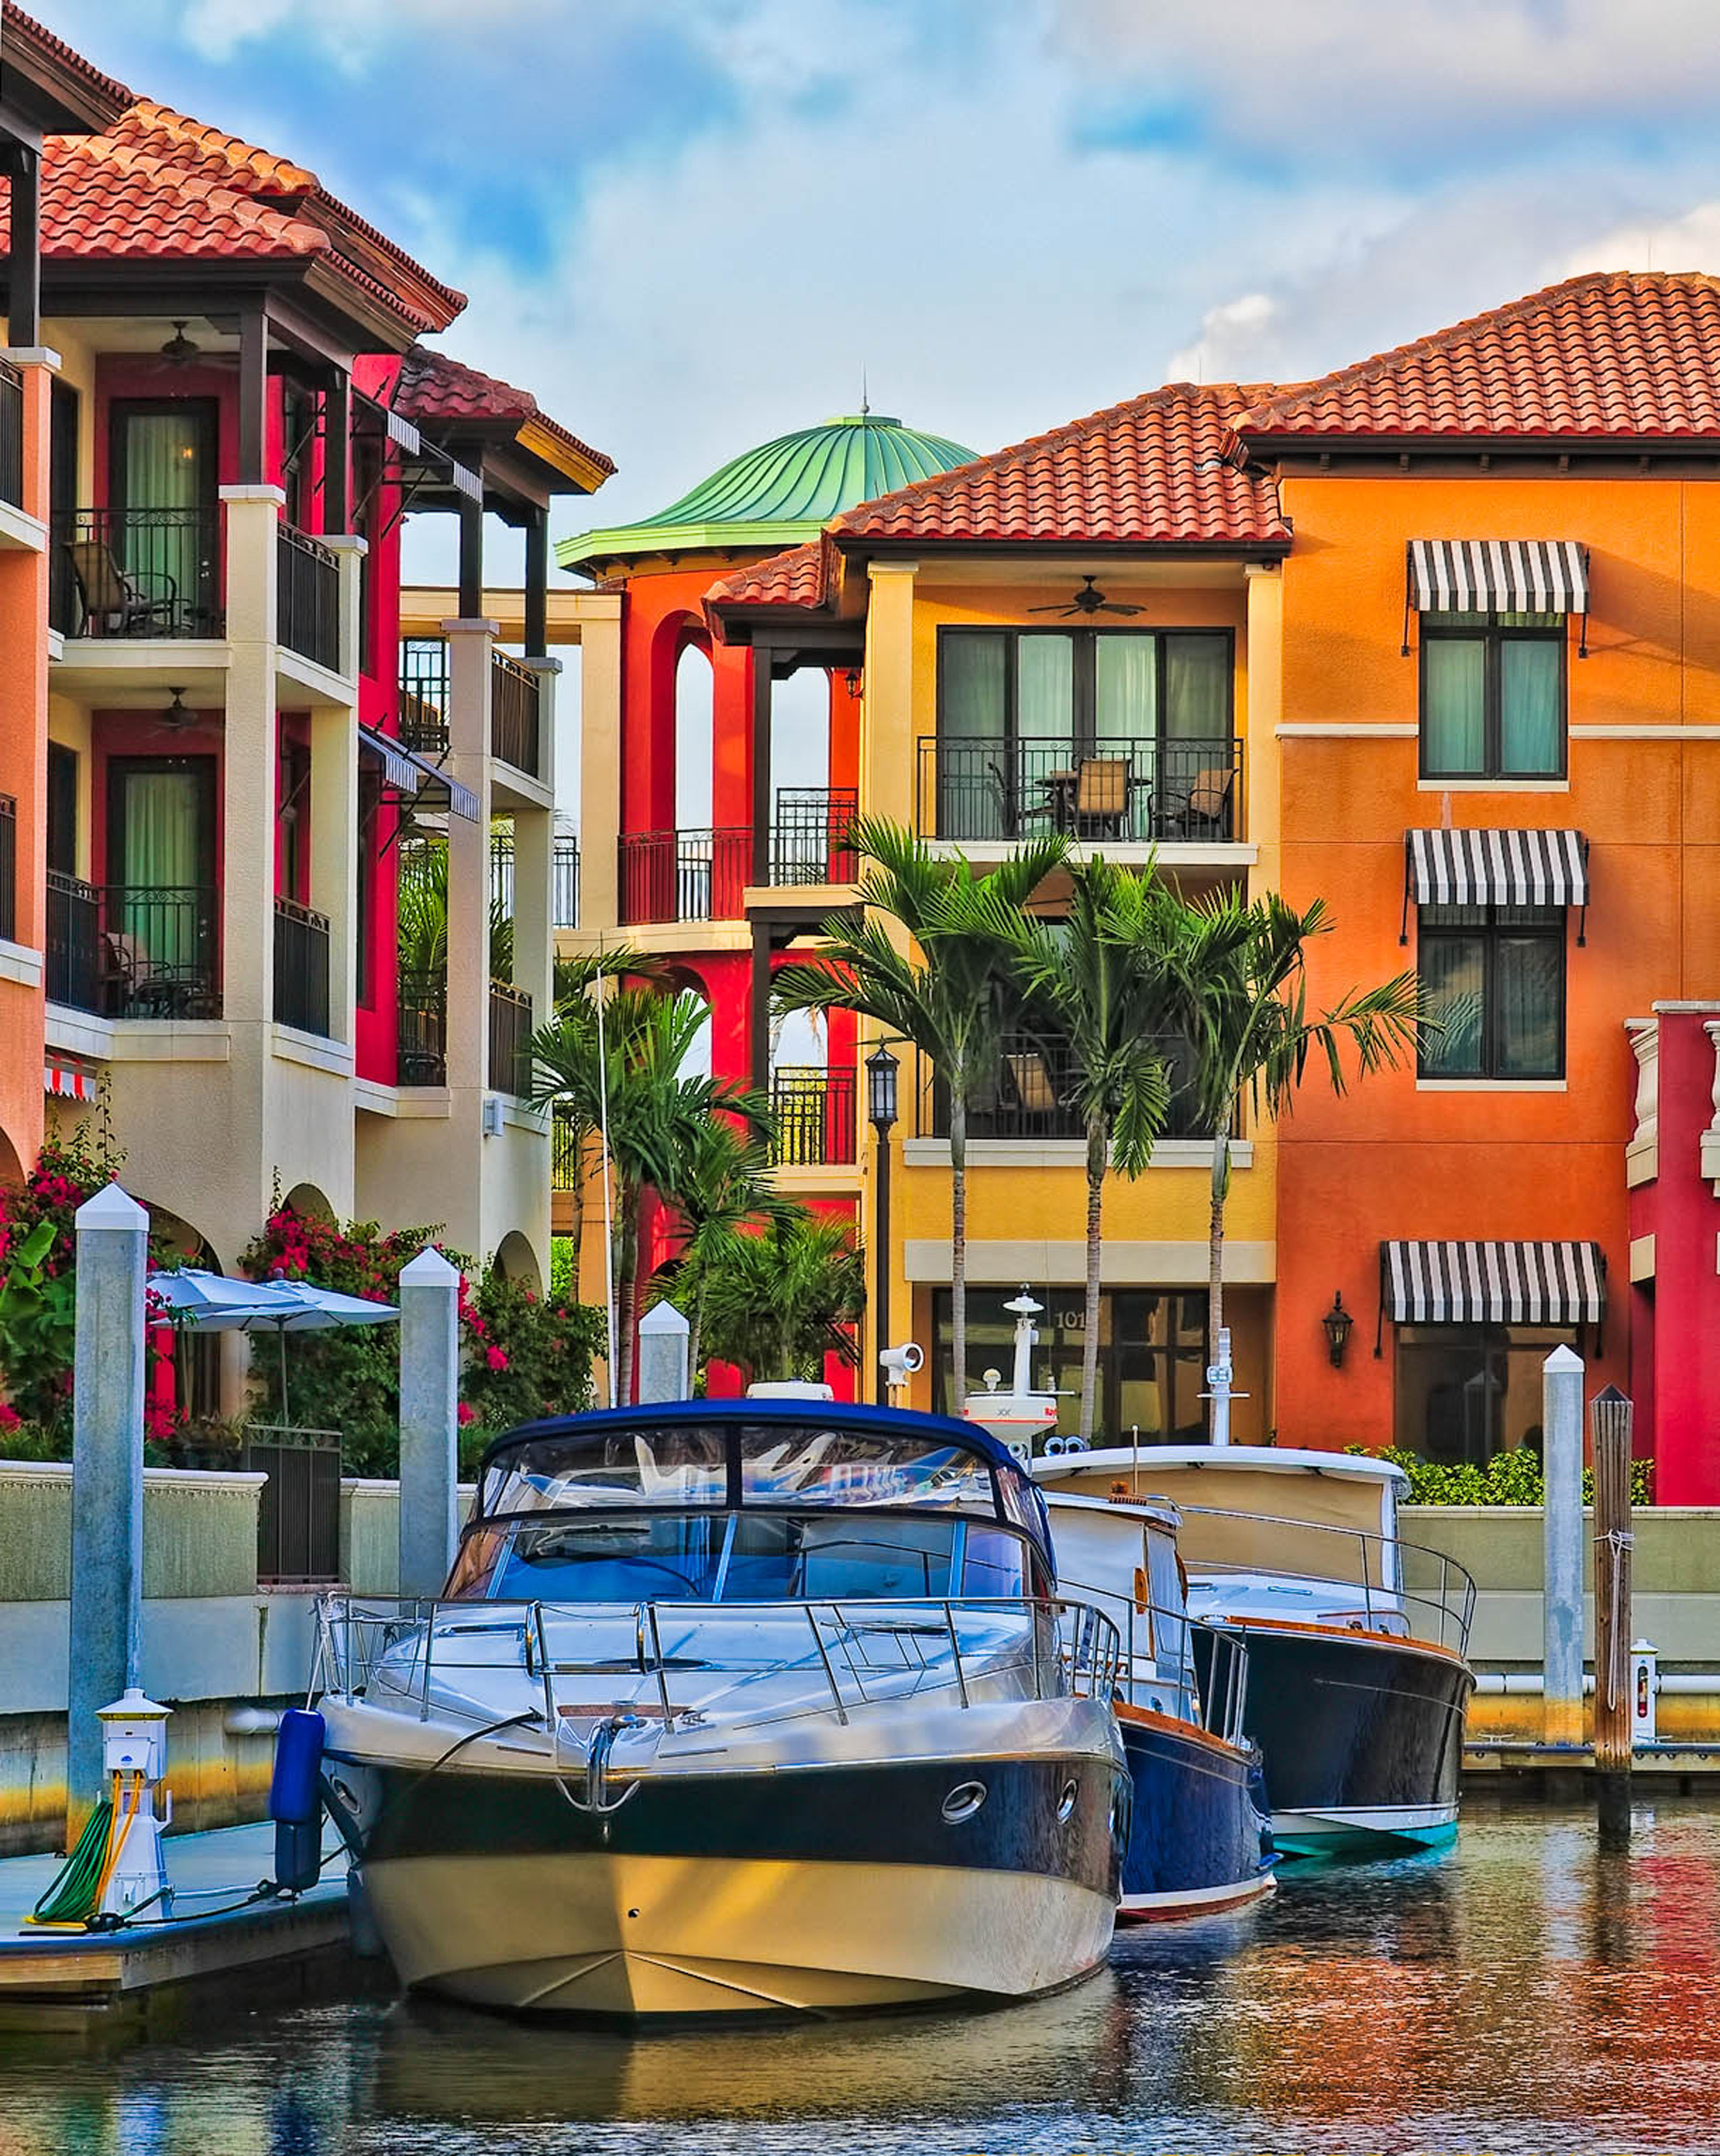 Naples bay resort announces 3 new packages for 2016 season for Hotels naples